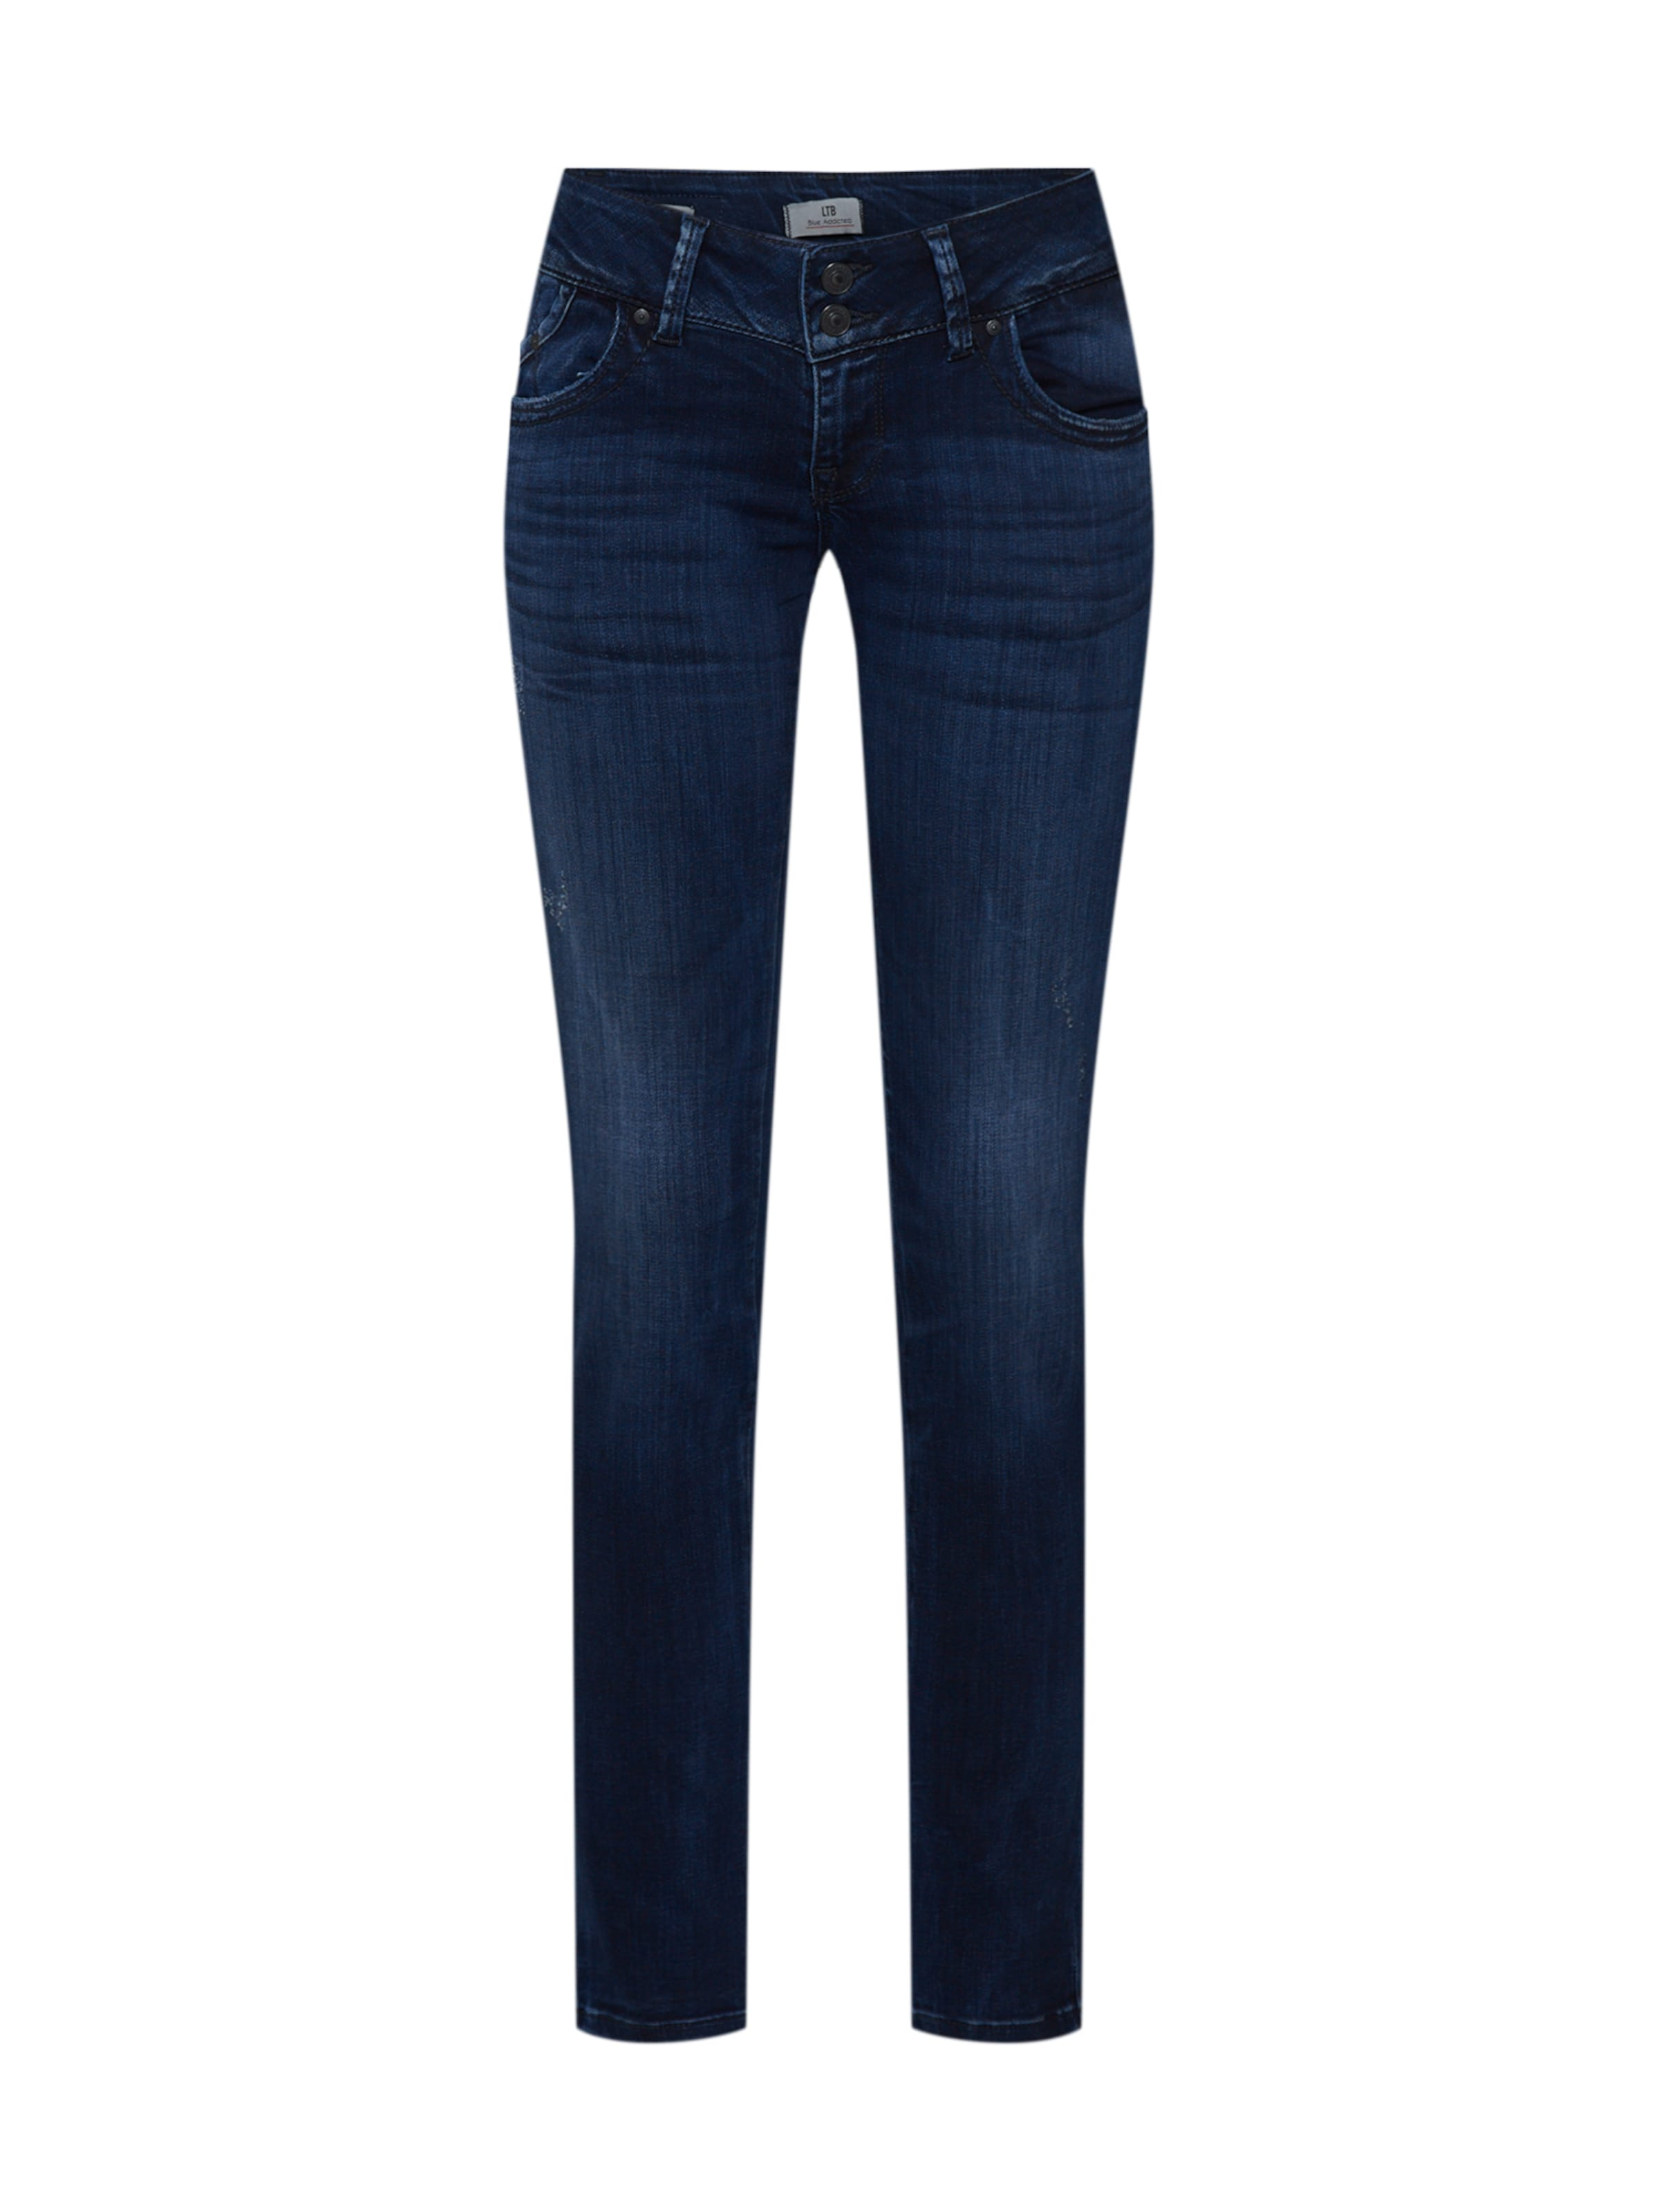 LTB Jeans 'Molly' in blue denim